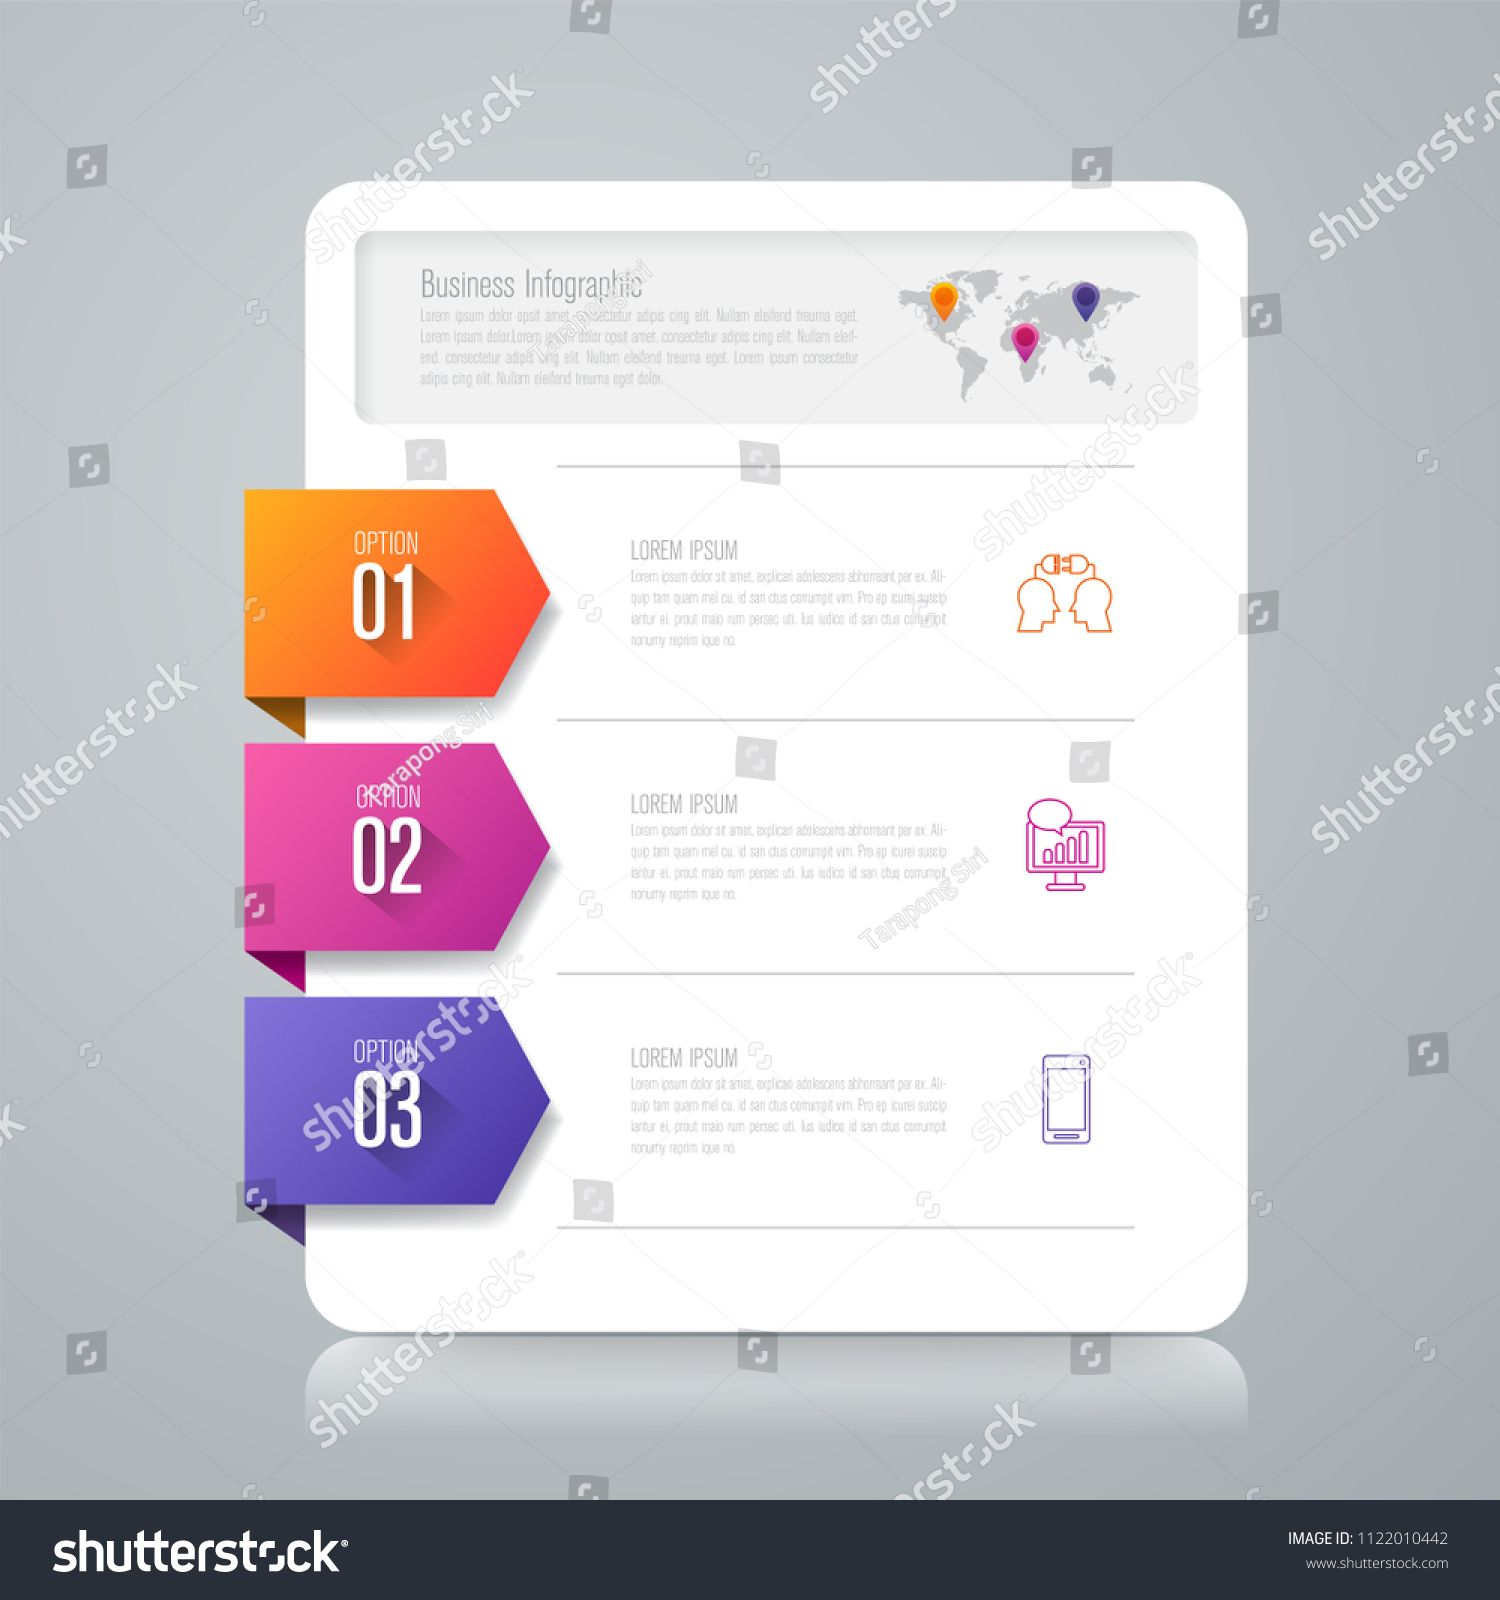 Infographics design vector and marketing icons can be used